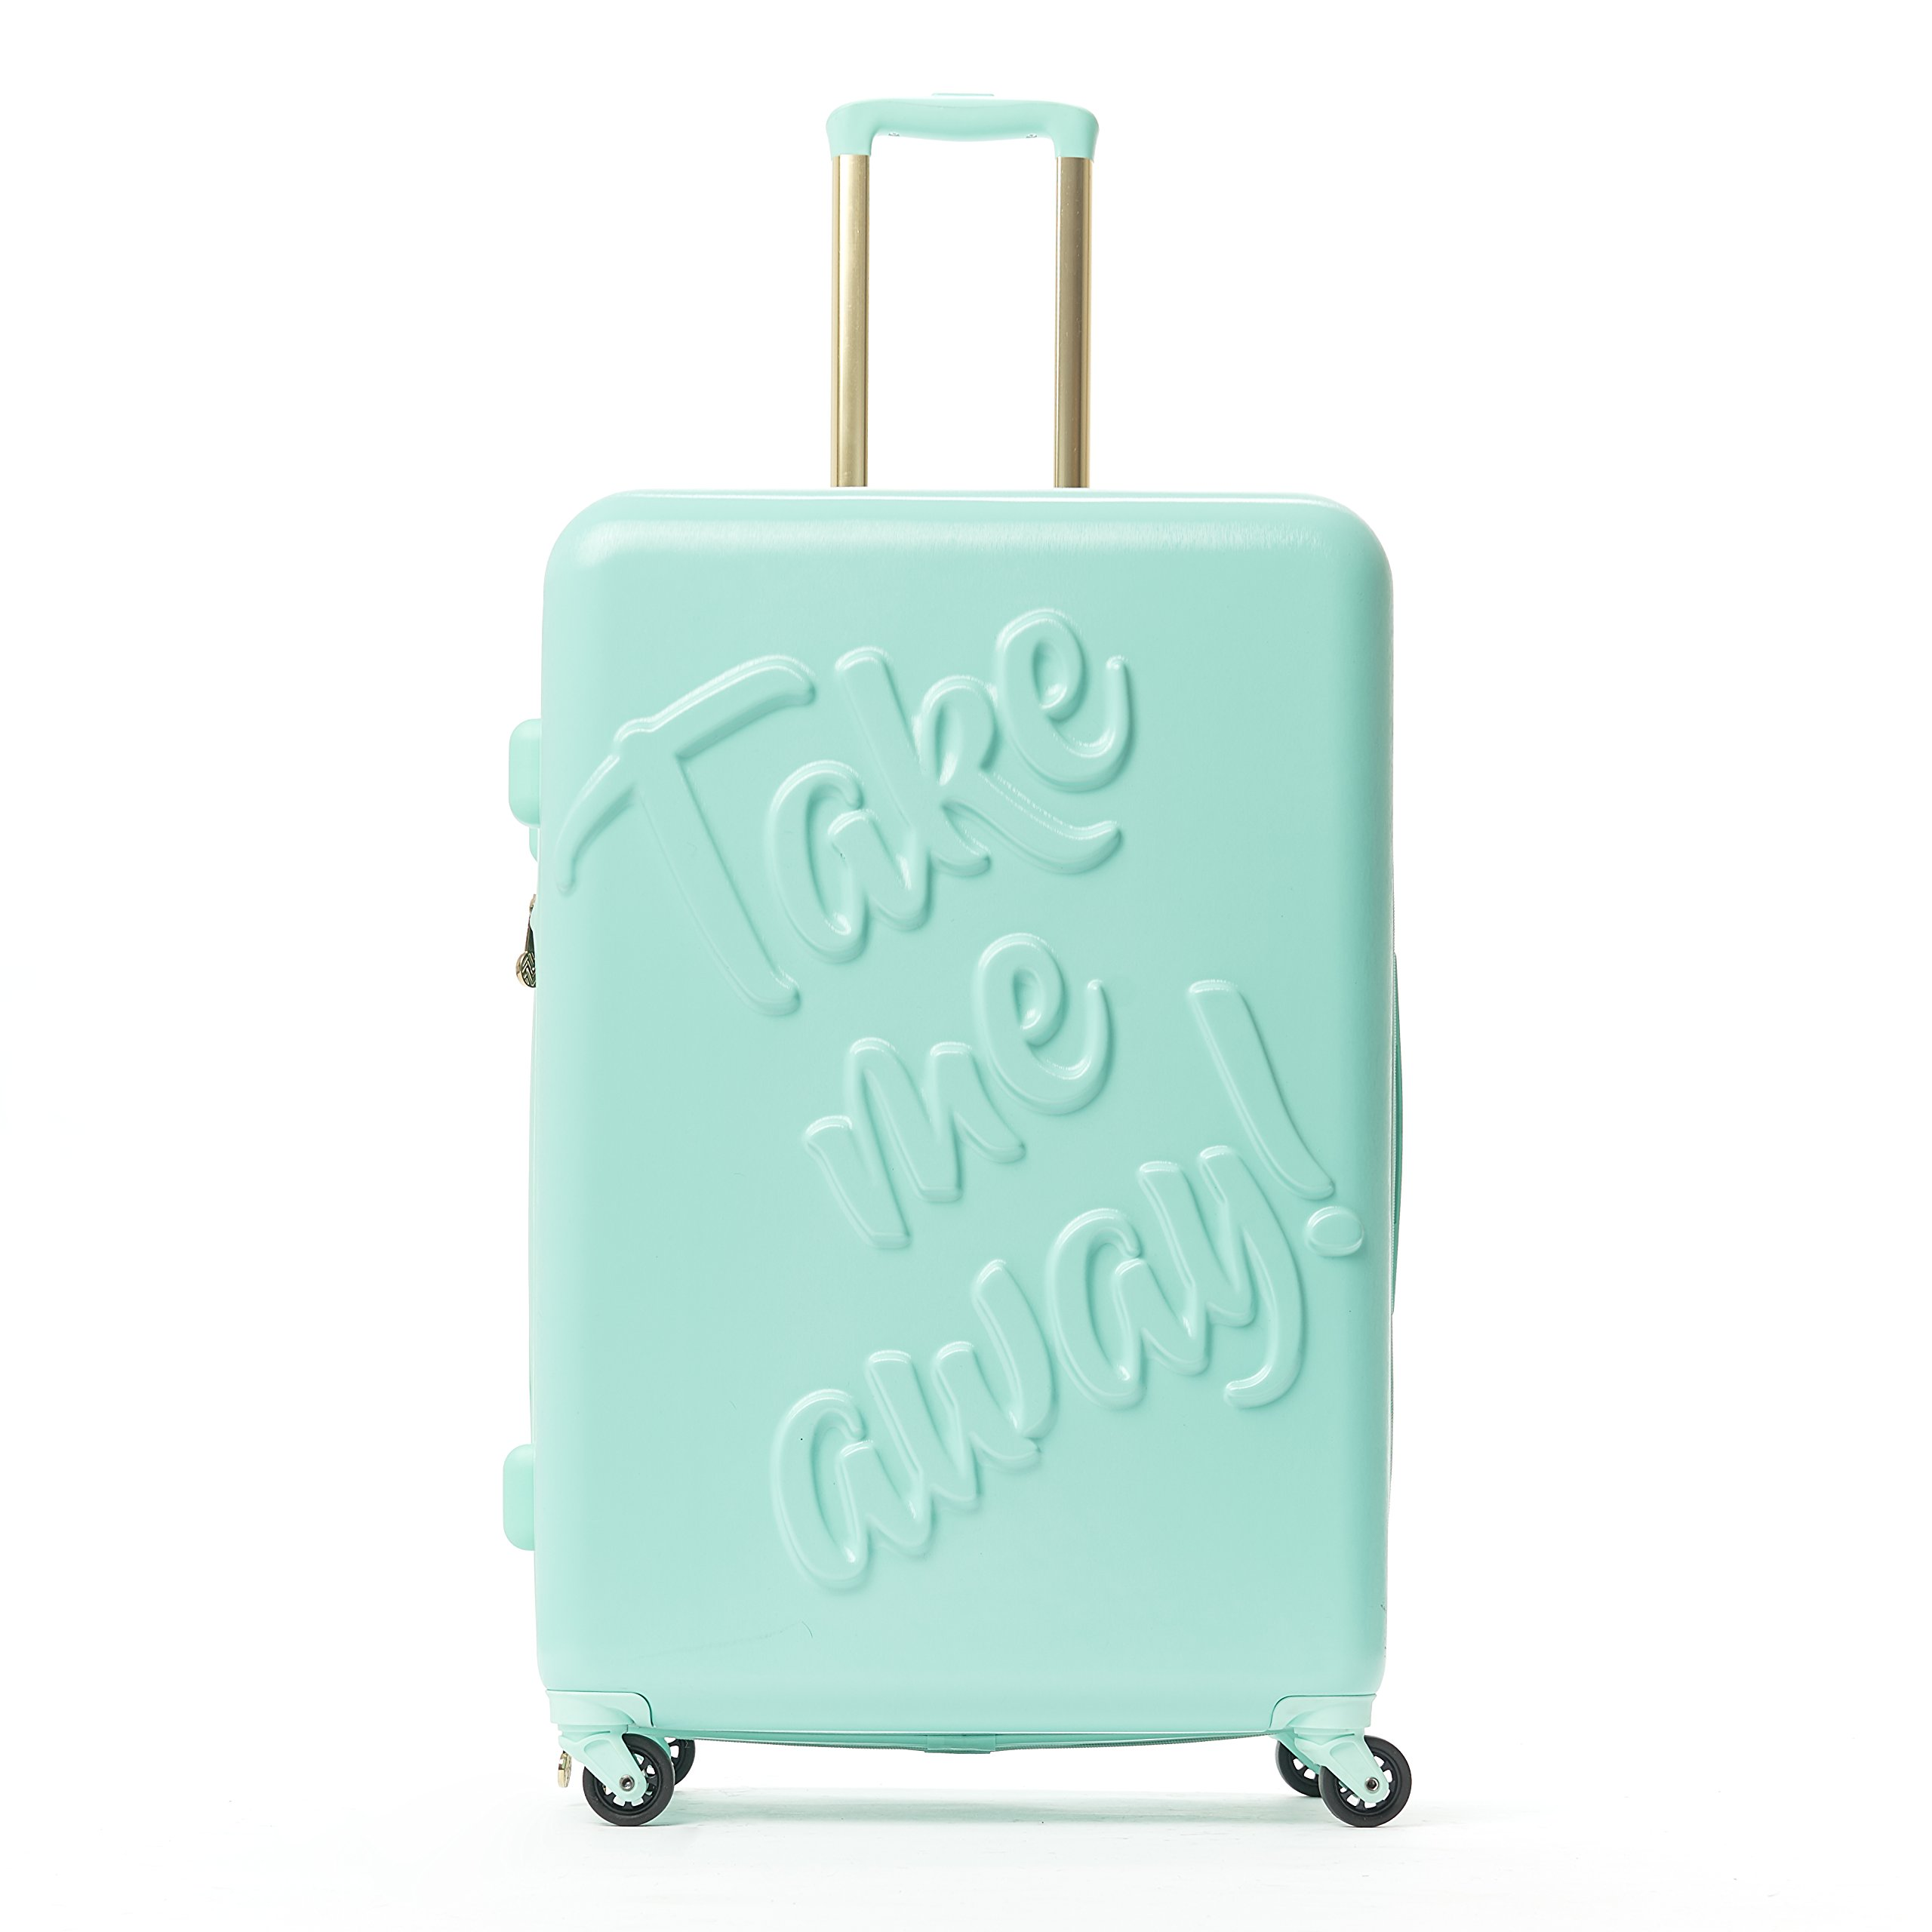 Macbeth Take me Away 29in Rolling Luggage Suitcase, Mint